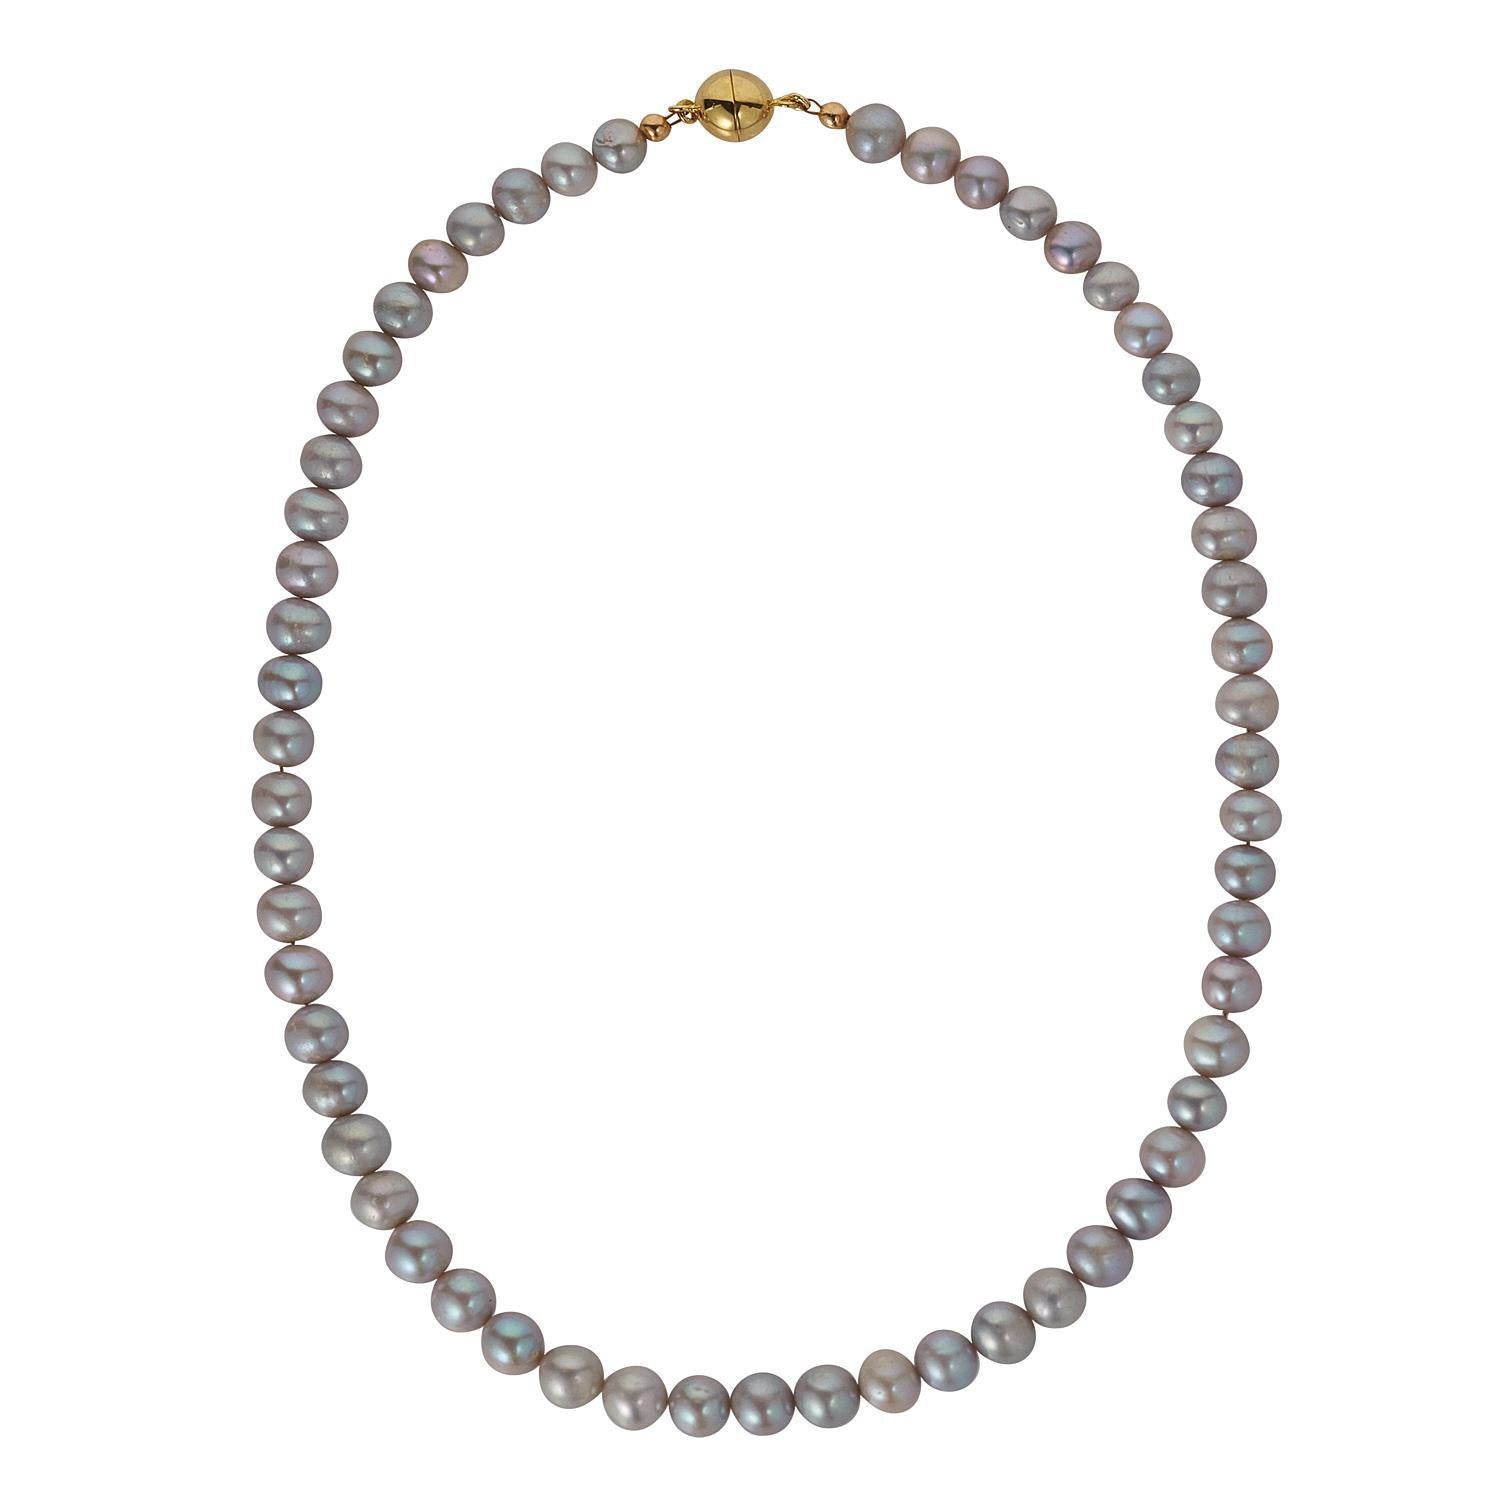 String of Grey Freshwater Pearls with Gold Plated Magnetic Clasp